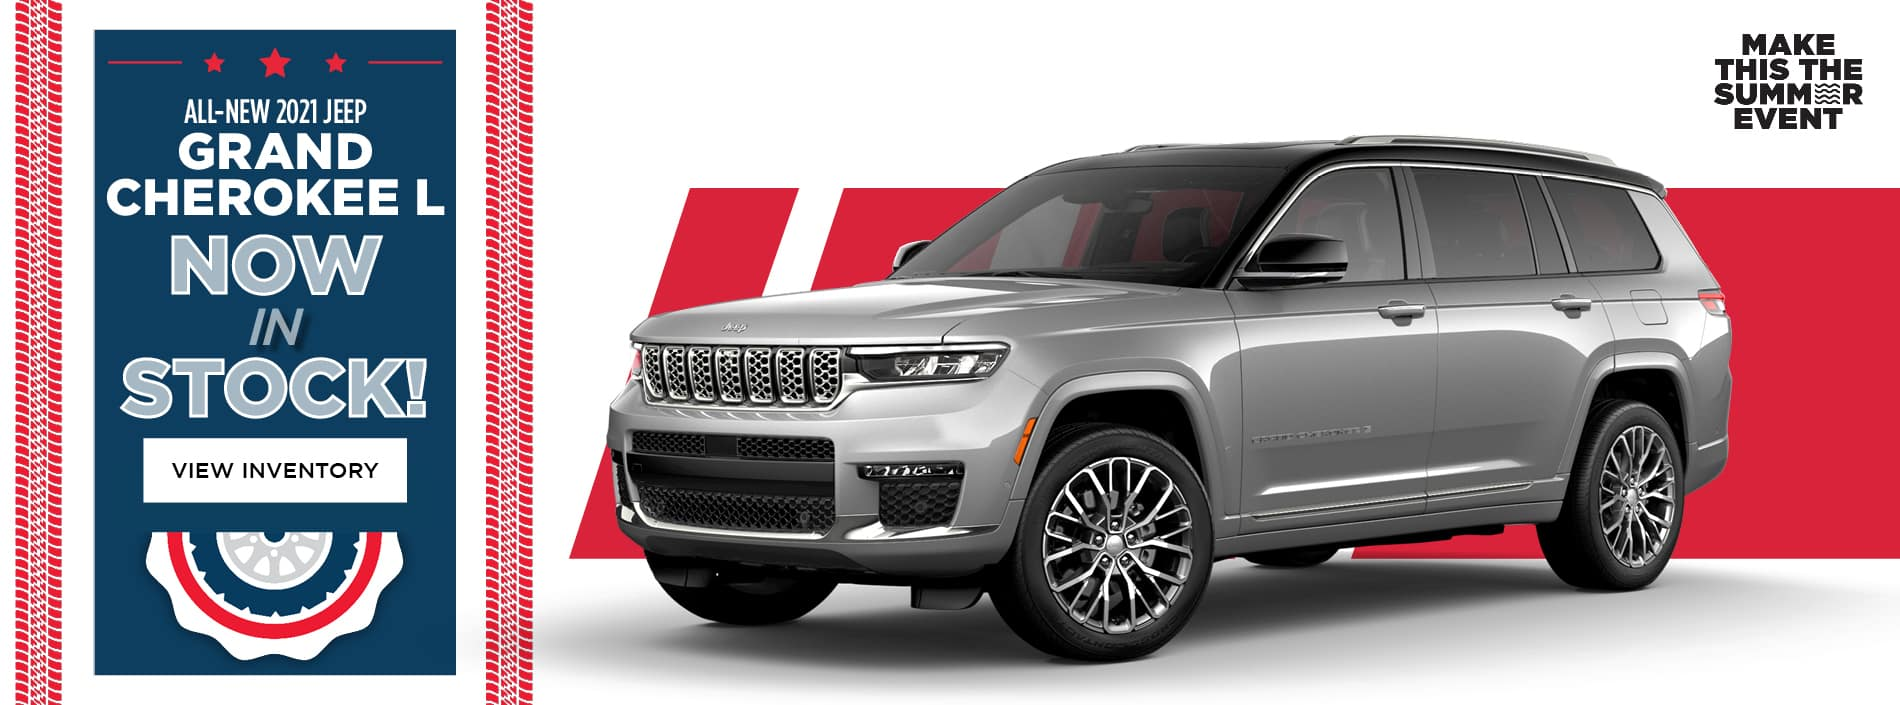 Jeep Grand Cherokee L: Now In Stock